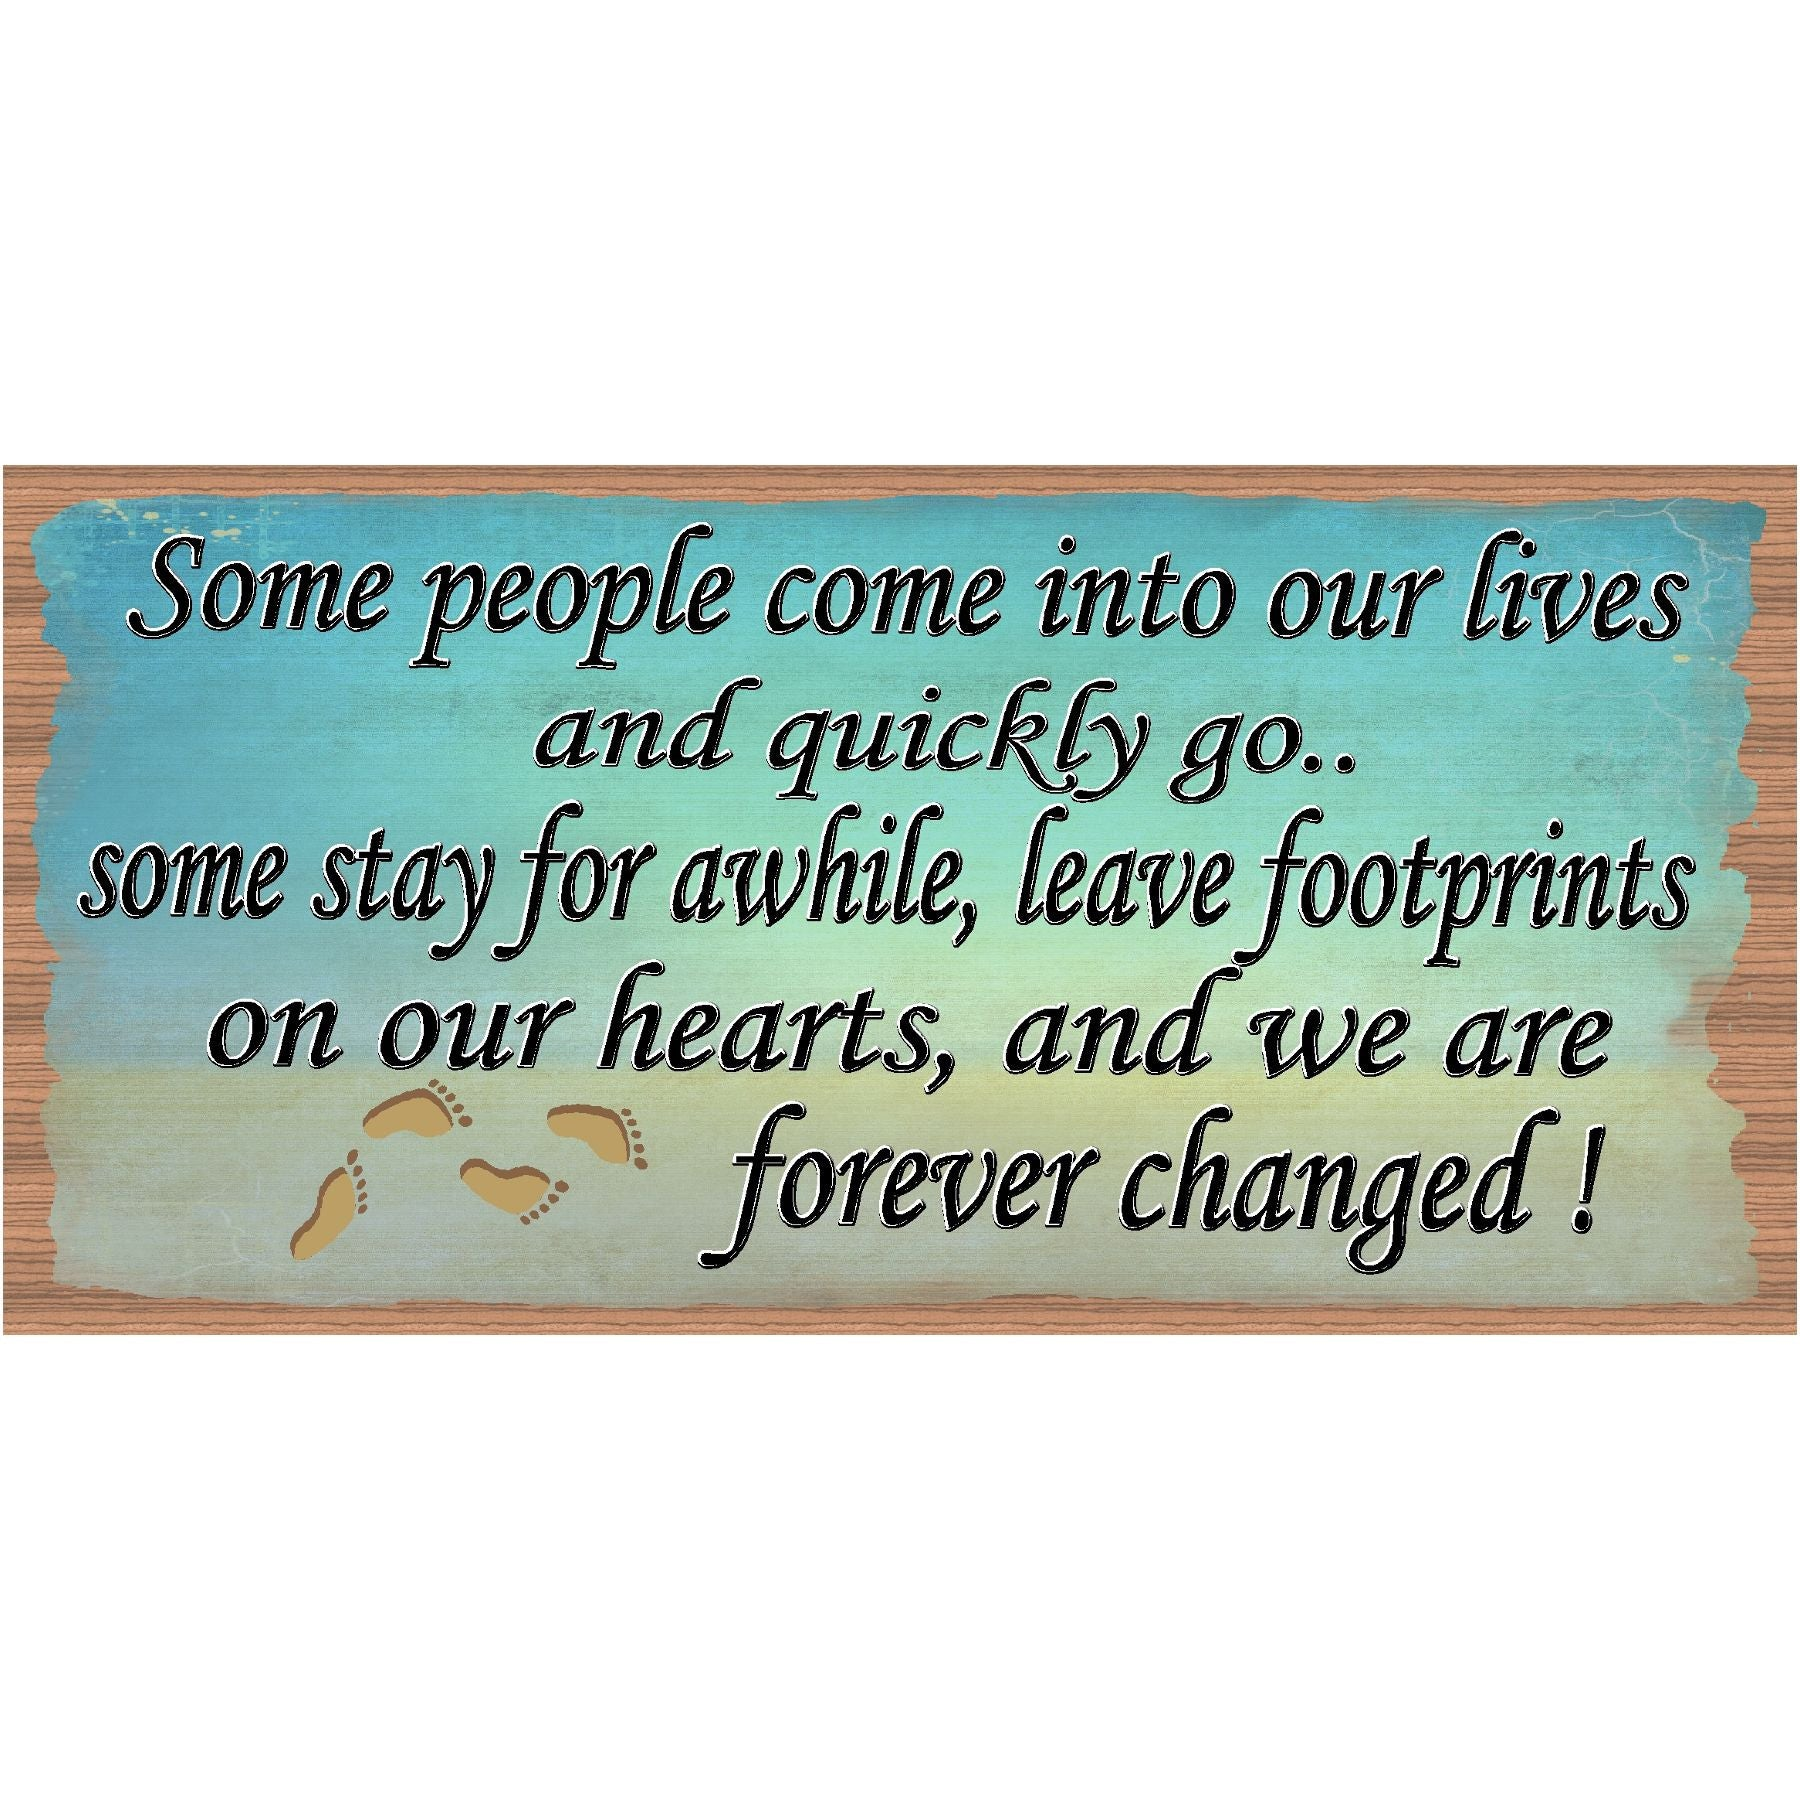 Footprints Wood Signs - GS 389 - Inspirational Plaque